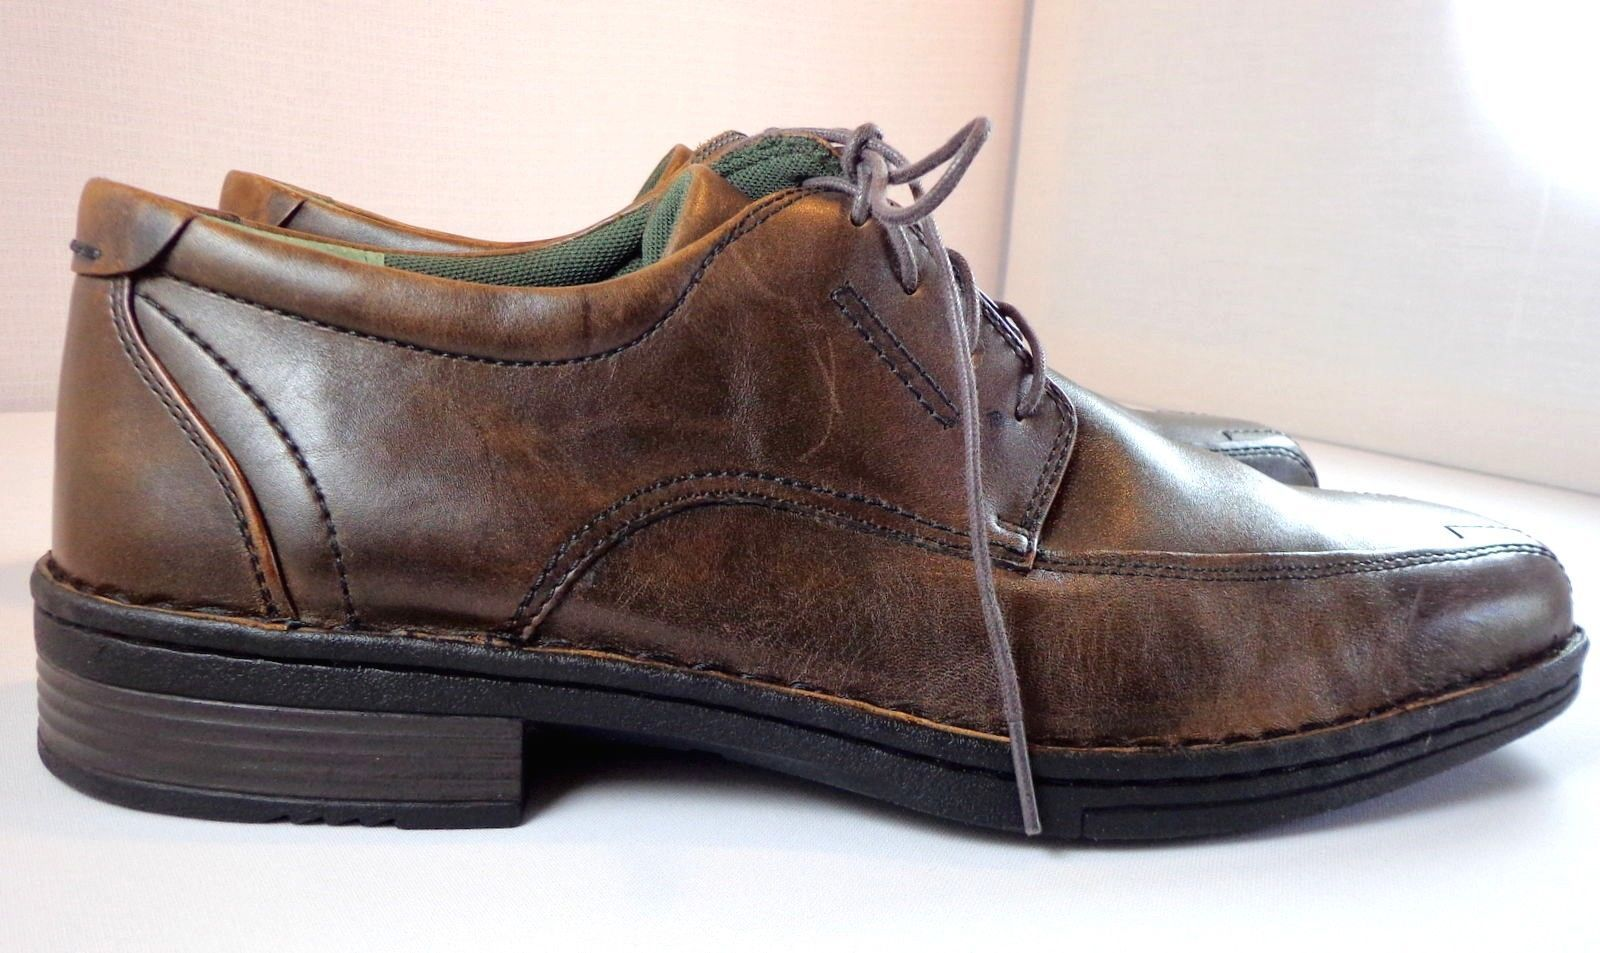 b0b18a5d6d0 Clarks Mens Brown Leather Oxfords Size 13 M and 50 similar items. S l1600